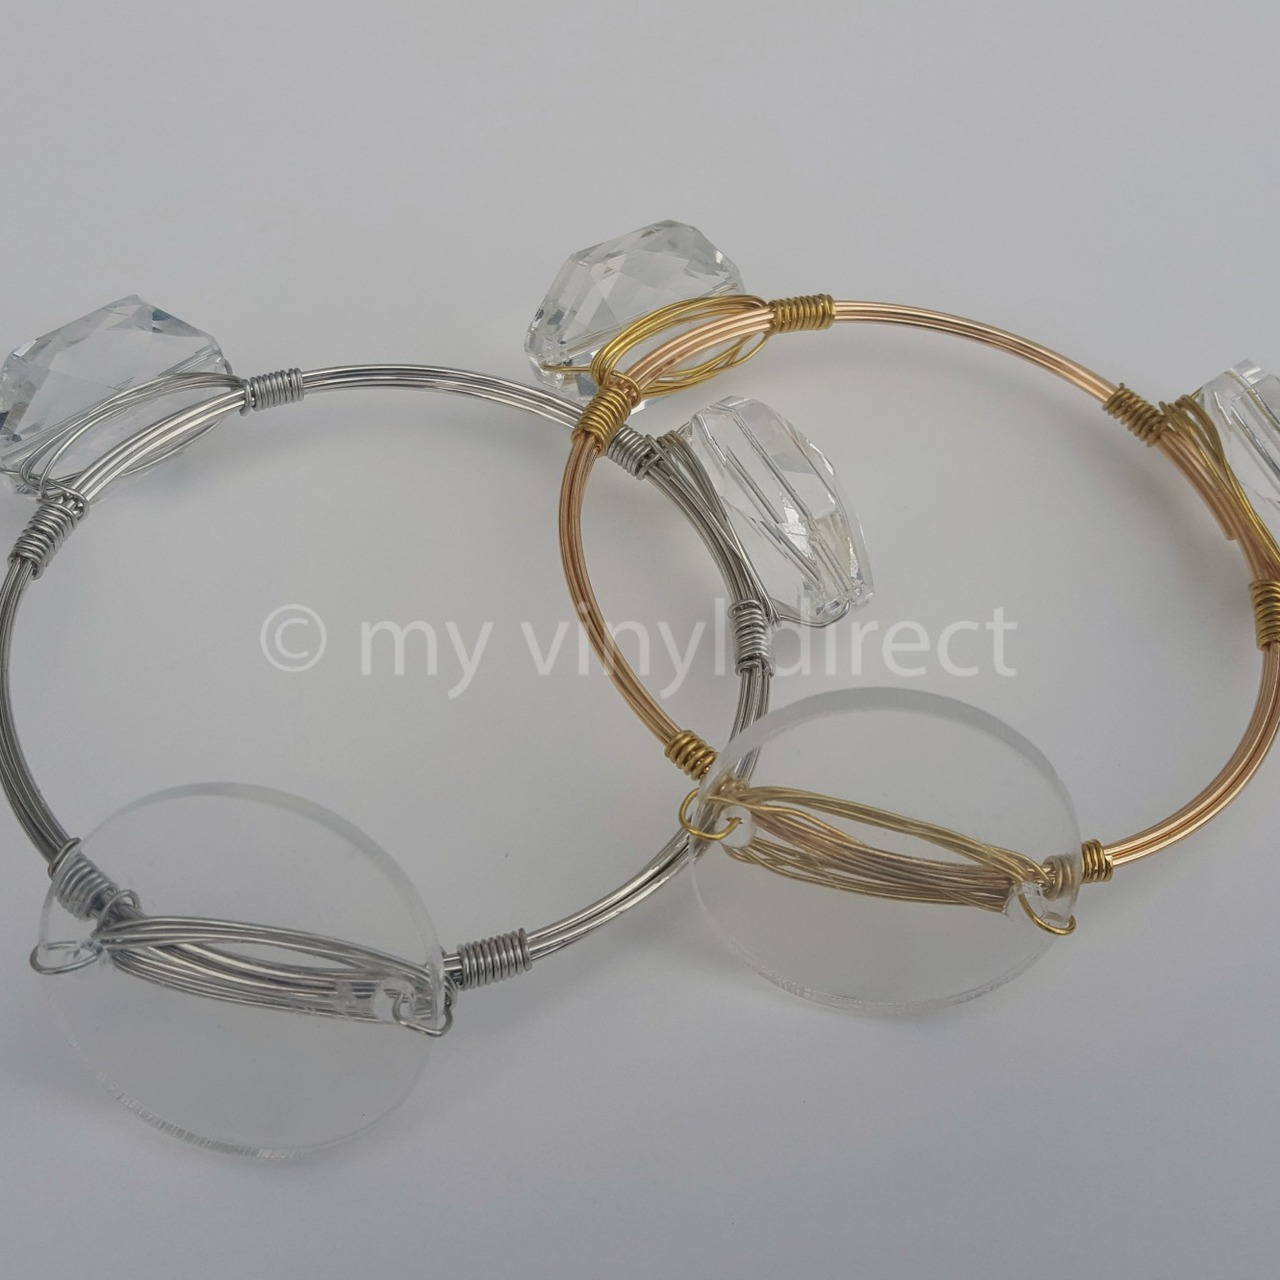 a at wide s pin com unique bangles vintage from gold buccellati bracelets bangle collection jewelry diamond of bracelet link